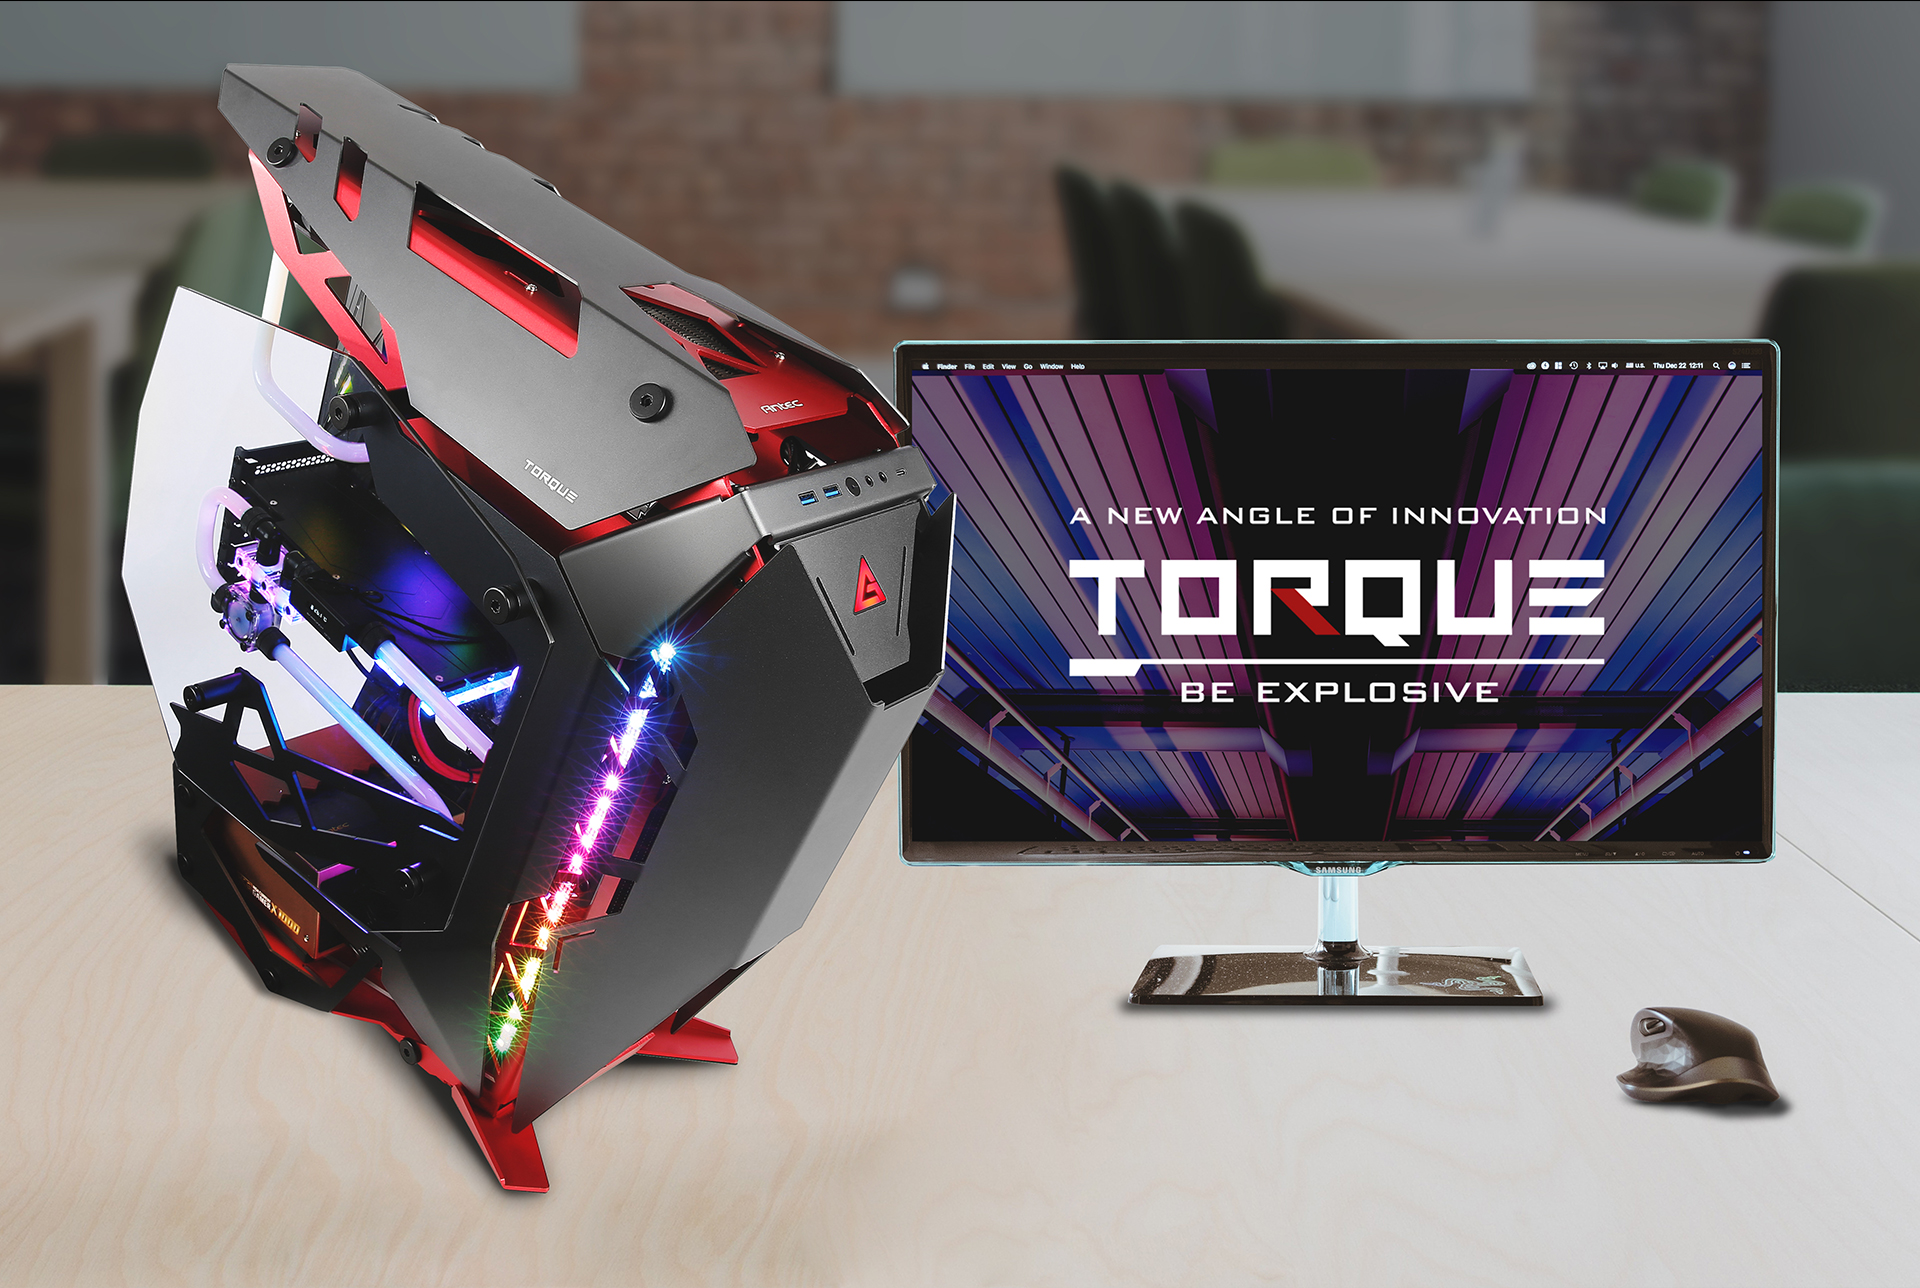 Antec TORQUE with a mouse and monitor that reads A NEW ANGLE OF INNOVATION - TORQUE - BE EXPLOSIVE